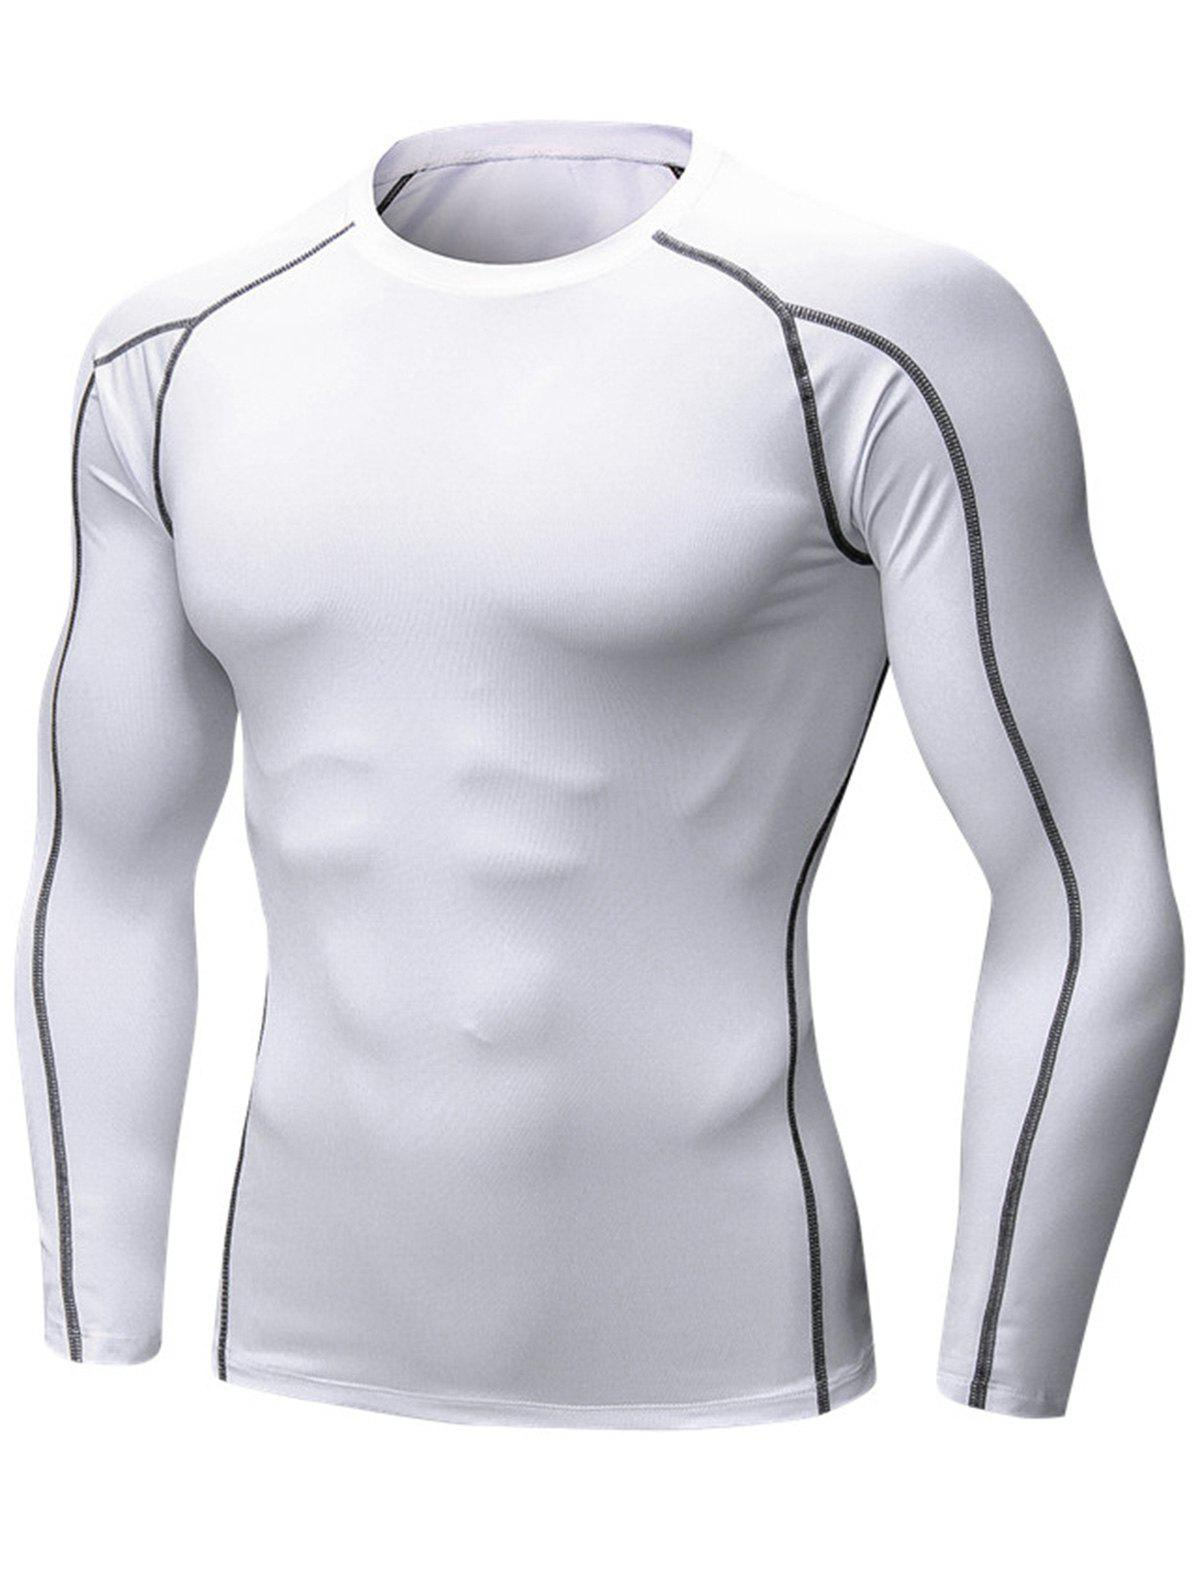 Stretchy Quick Dry Suture Long Sleeve T-shirt - WHITE XL